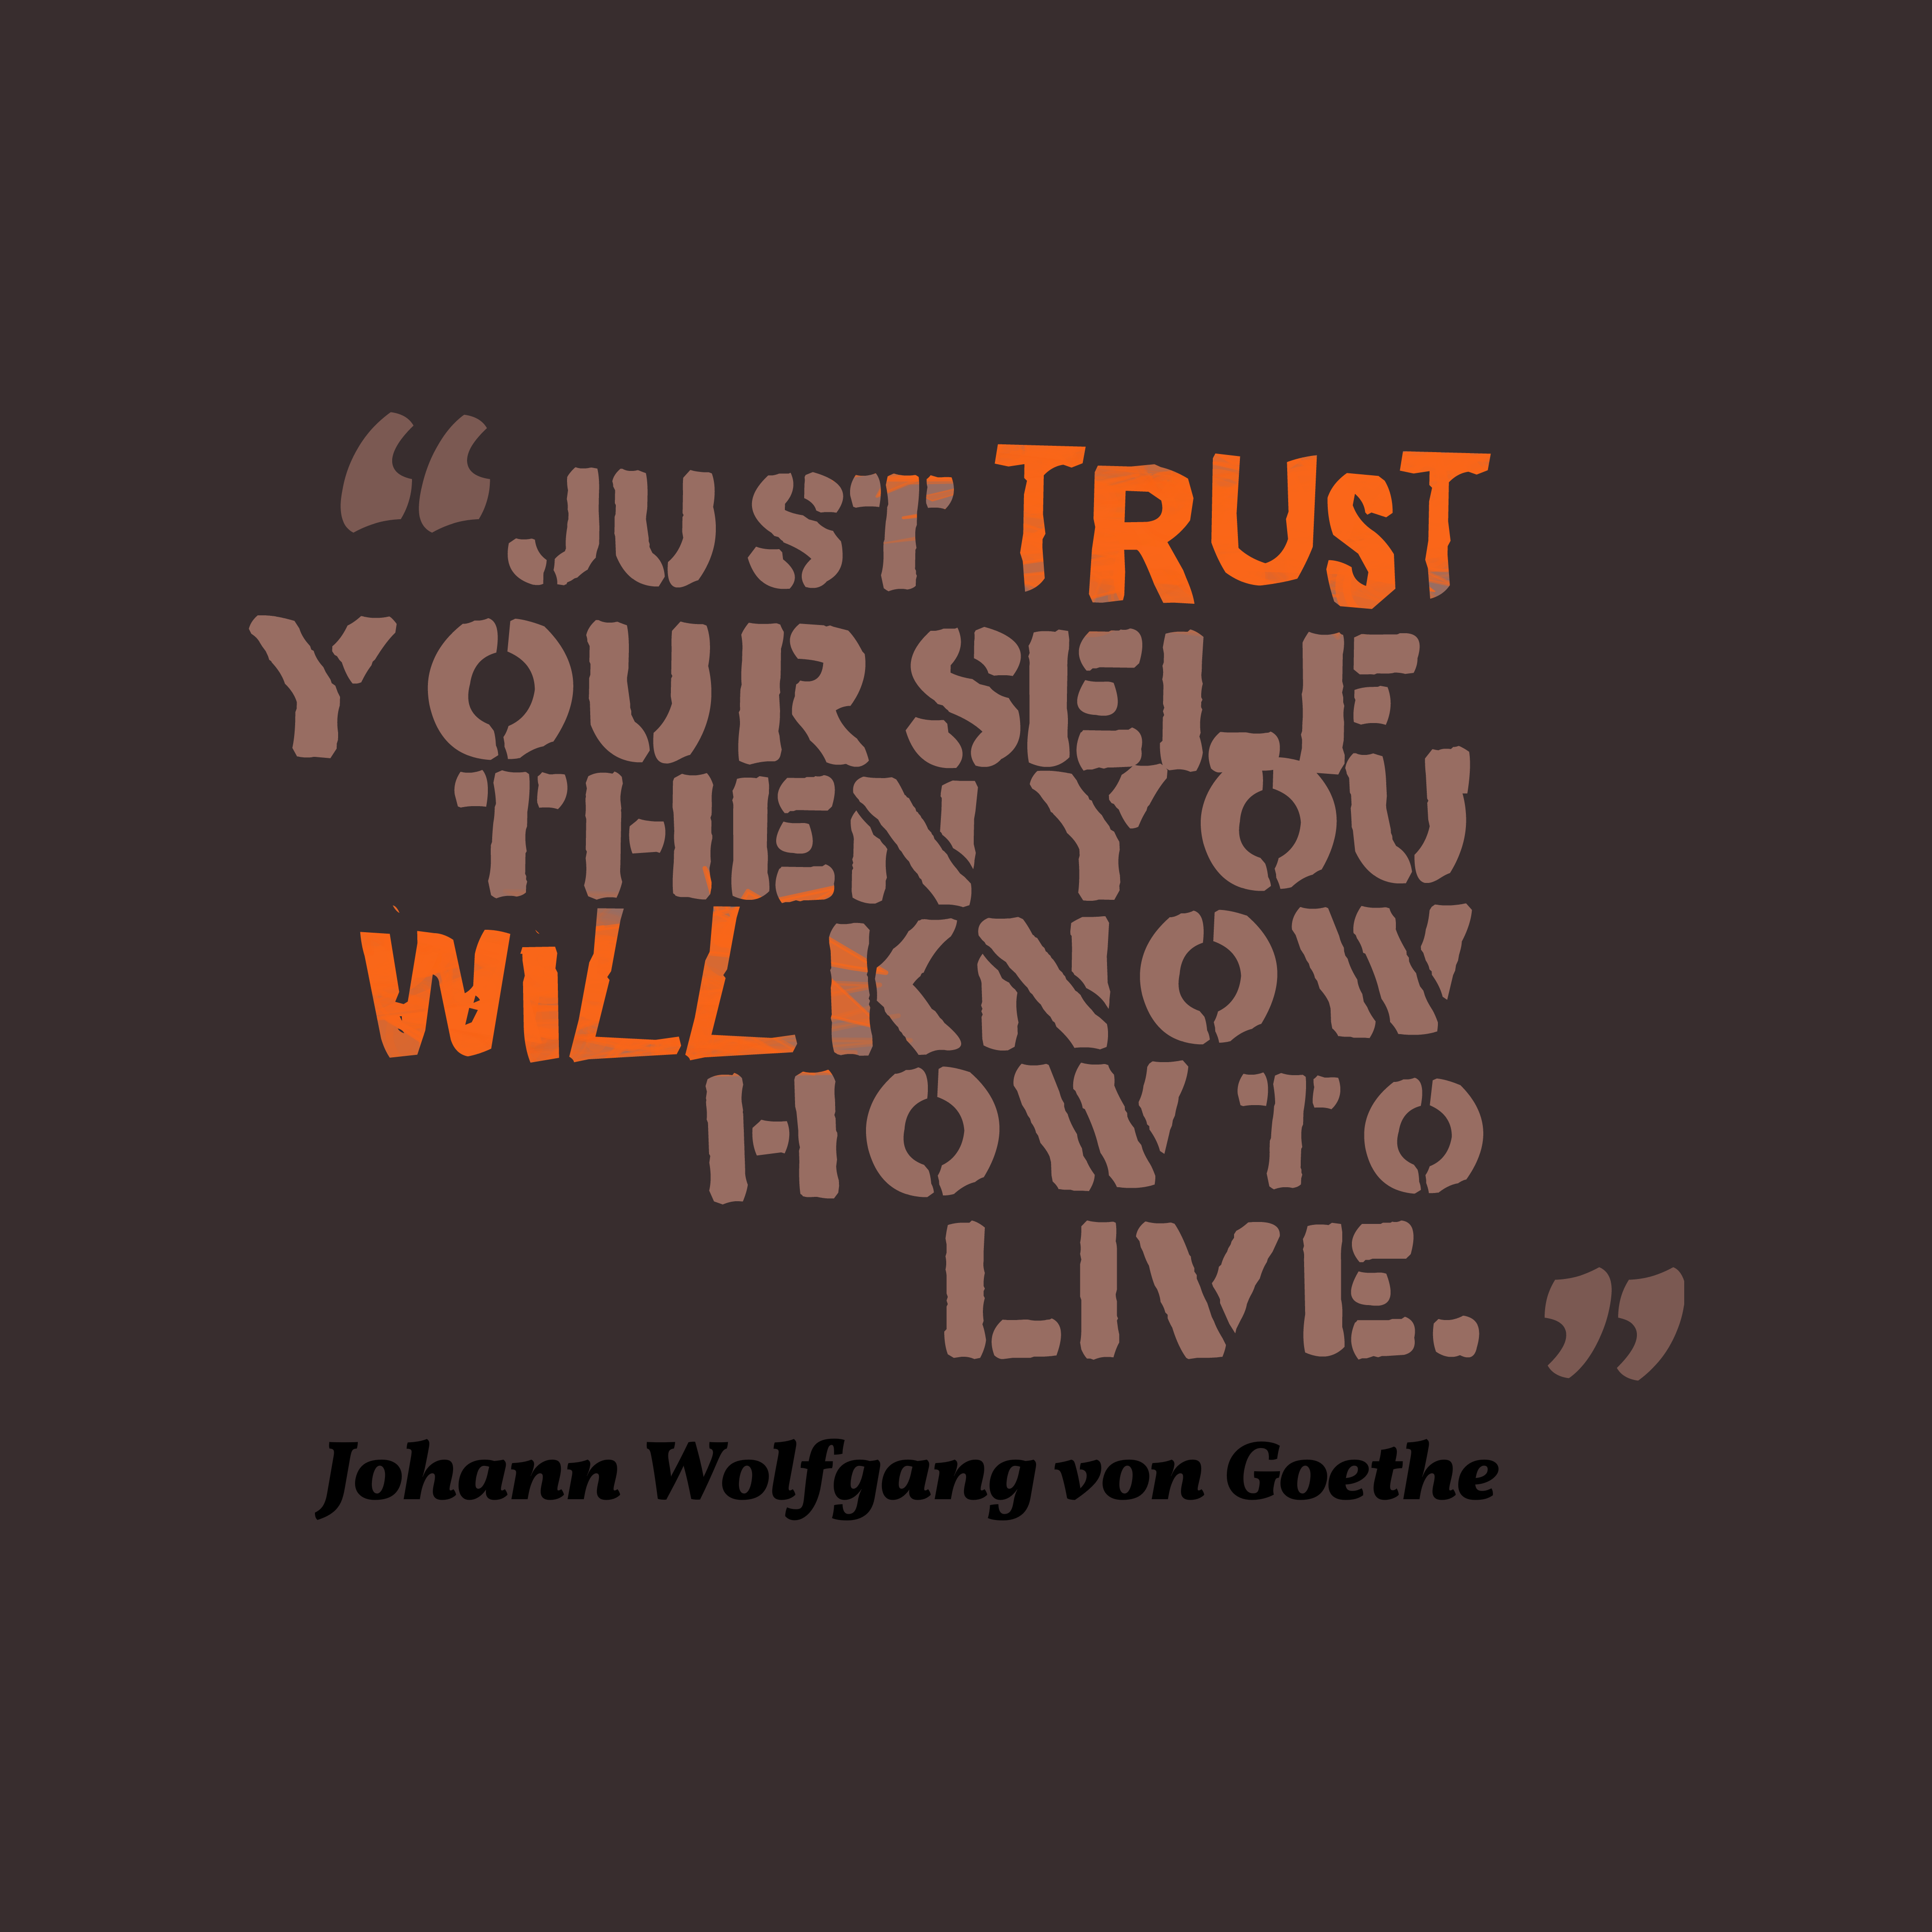 Johann Wolfgang von Goethe quote about trust